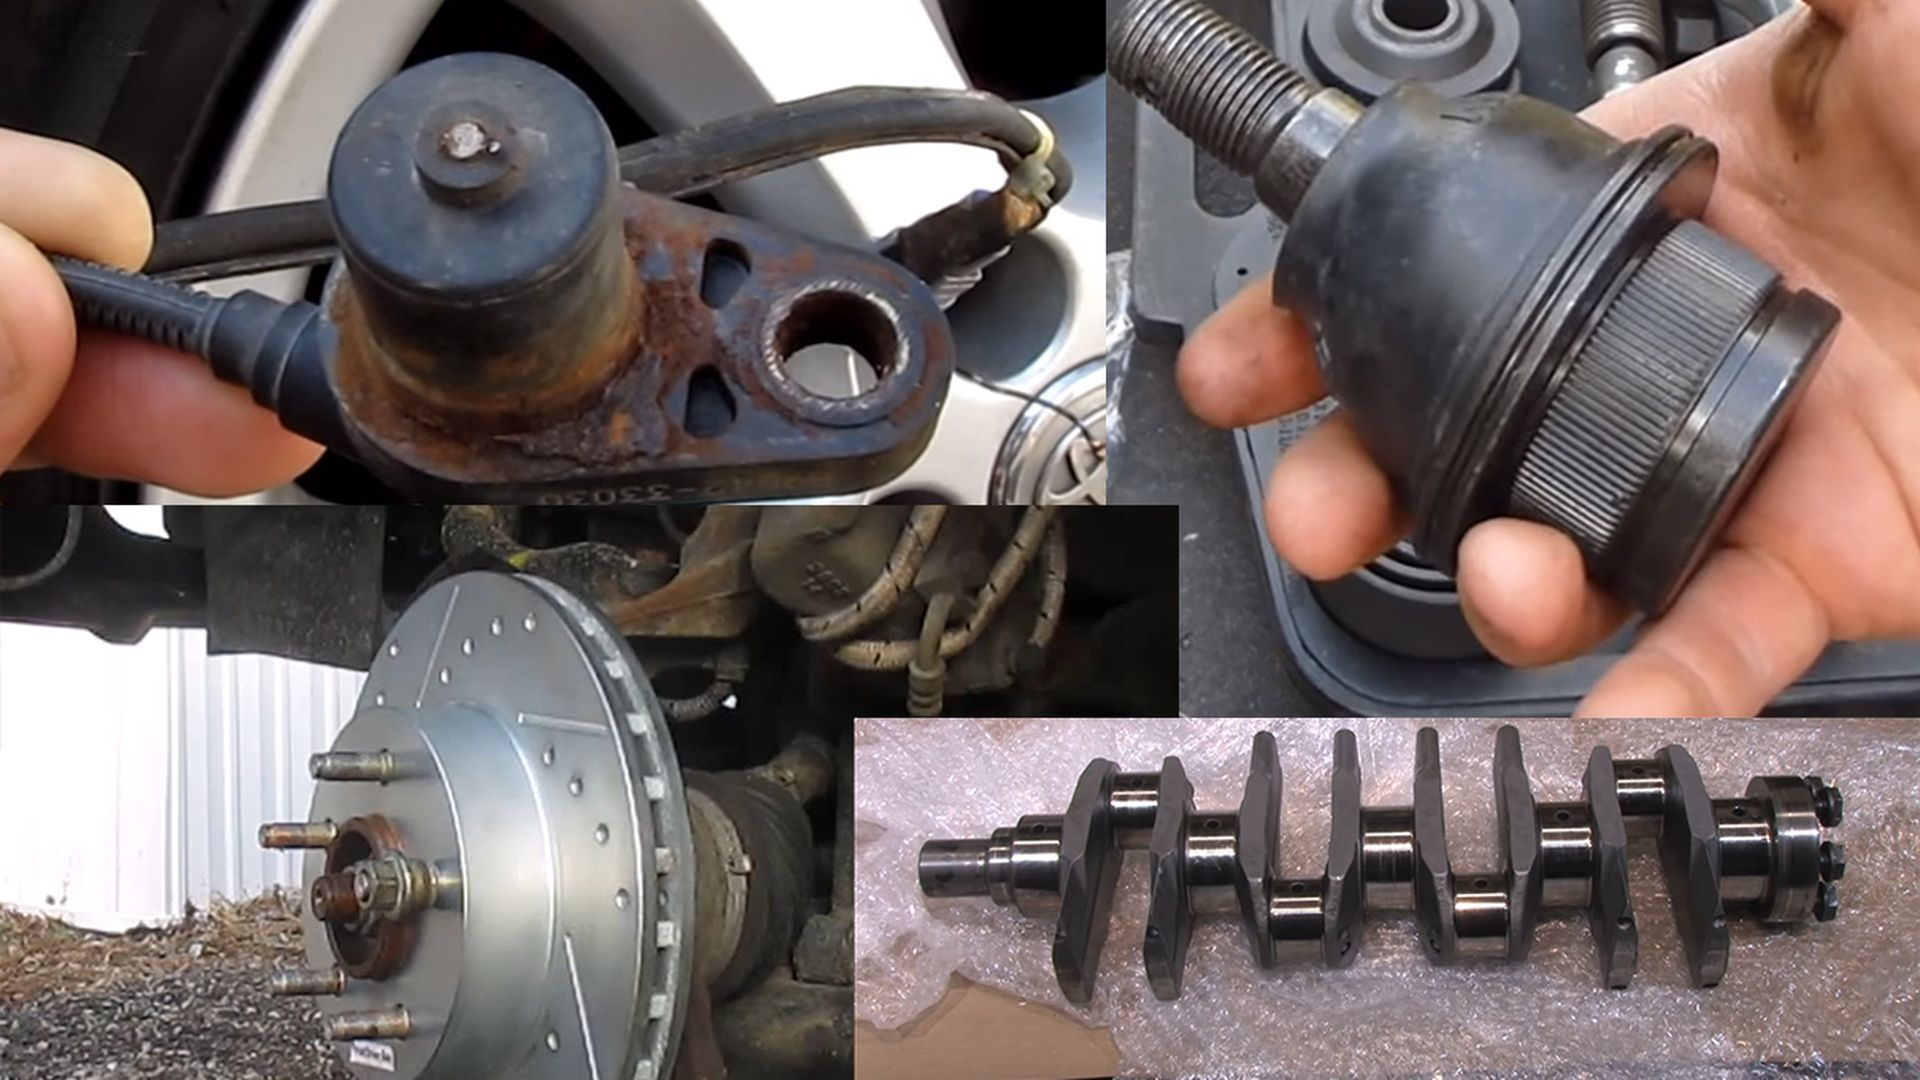 Zoo: 86% of people can't guess these 50 car parts by looking at just